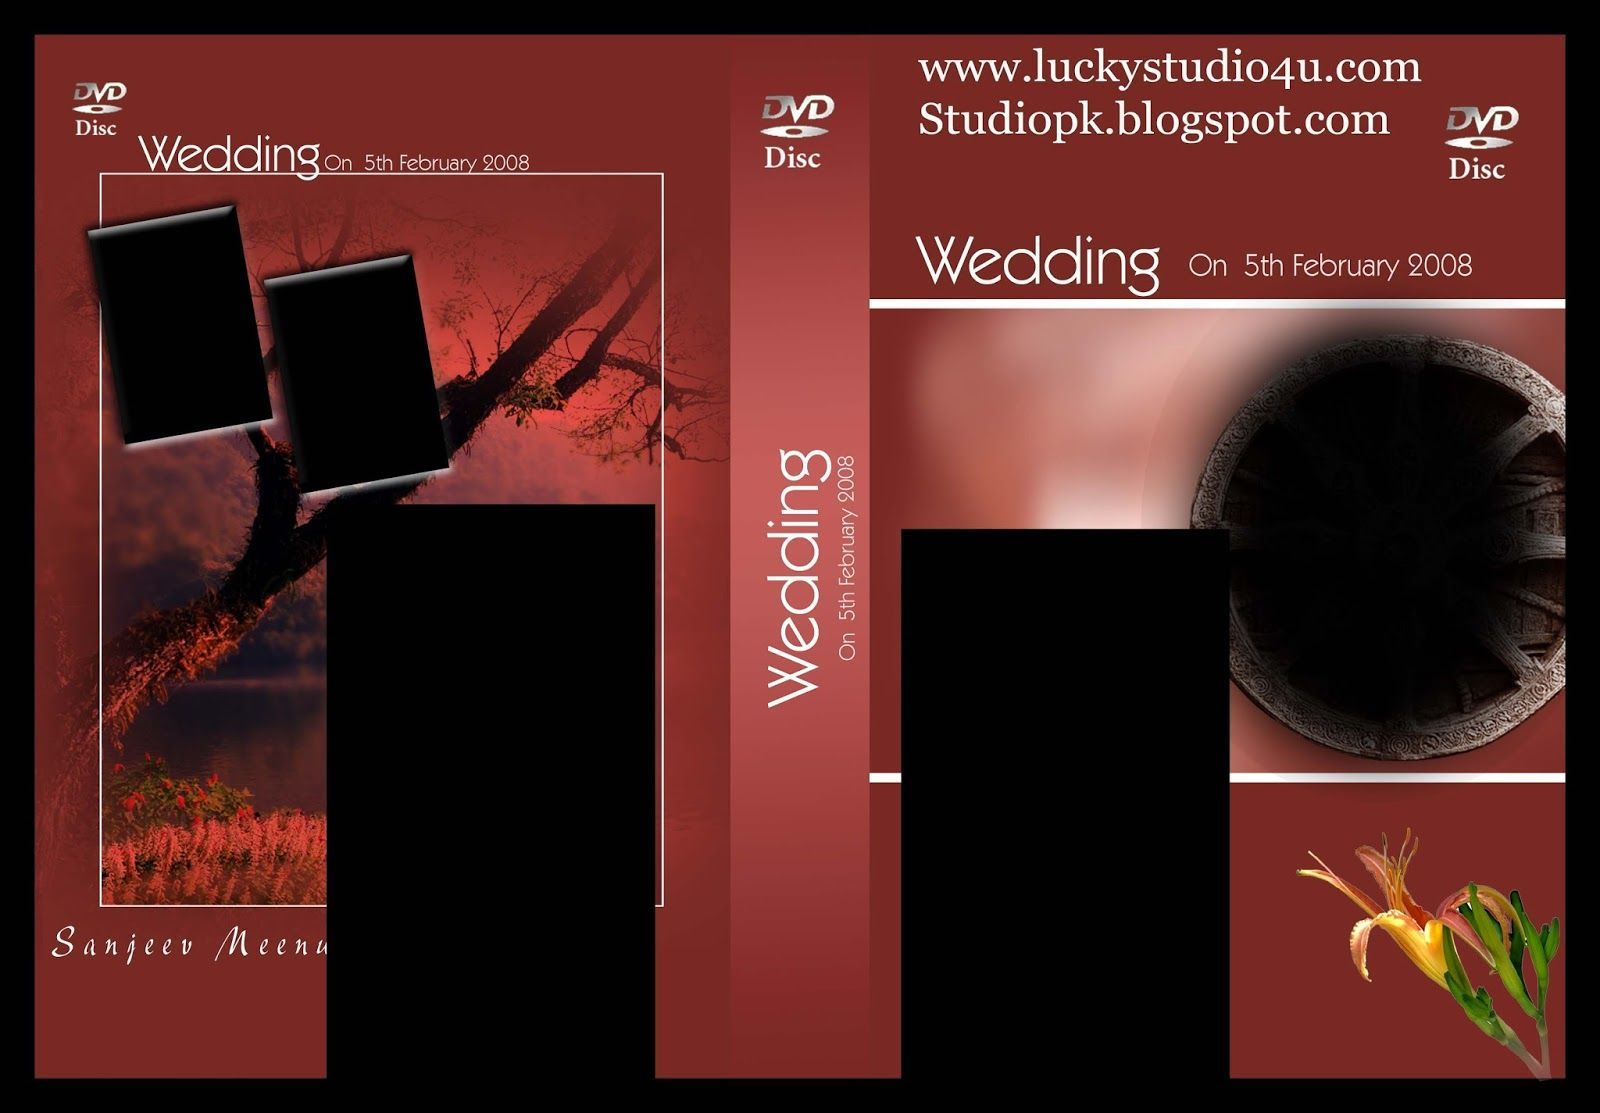 009 Incredible Wedding Cd Cover Design Template Free Download High Definition Full